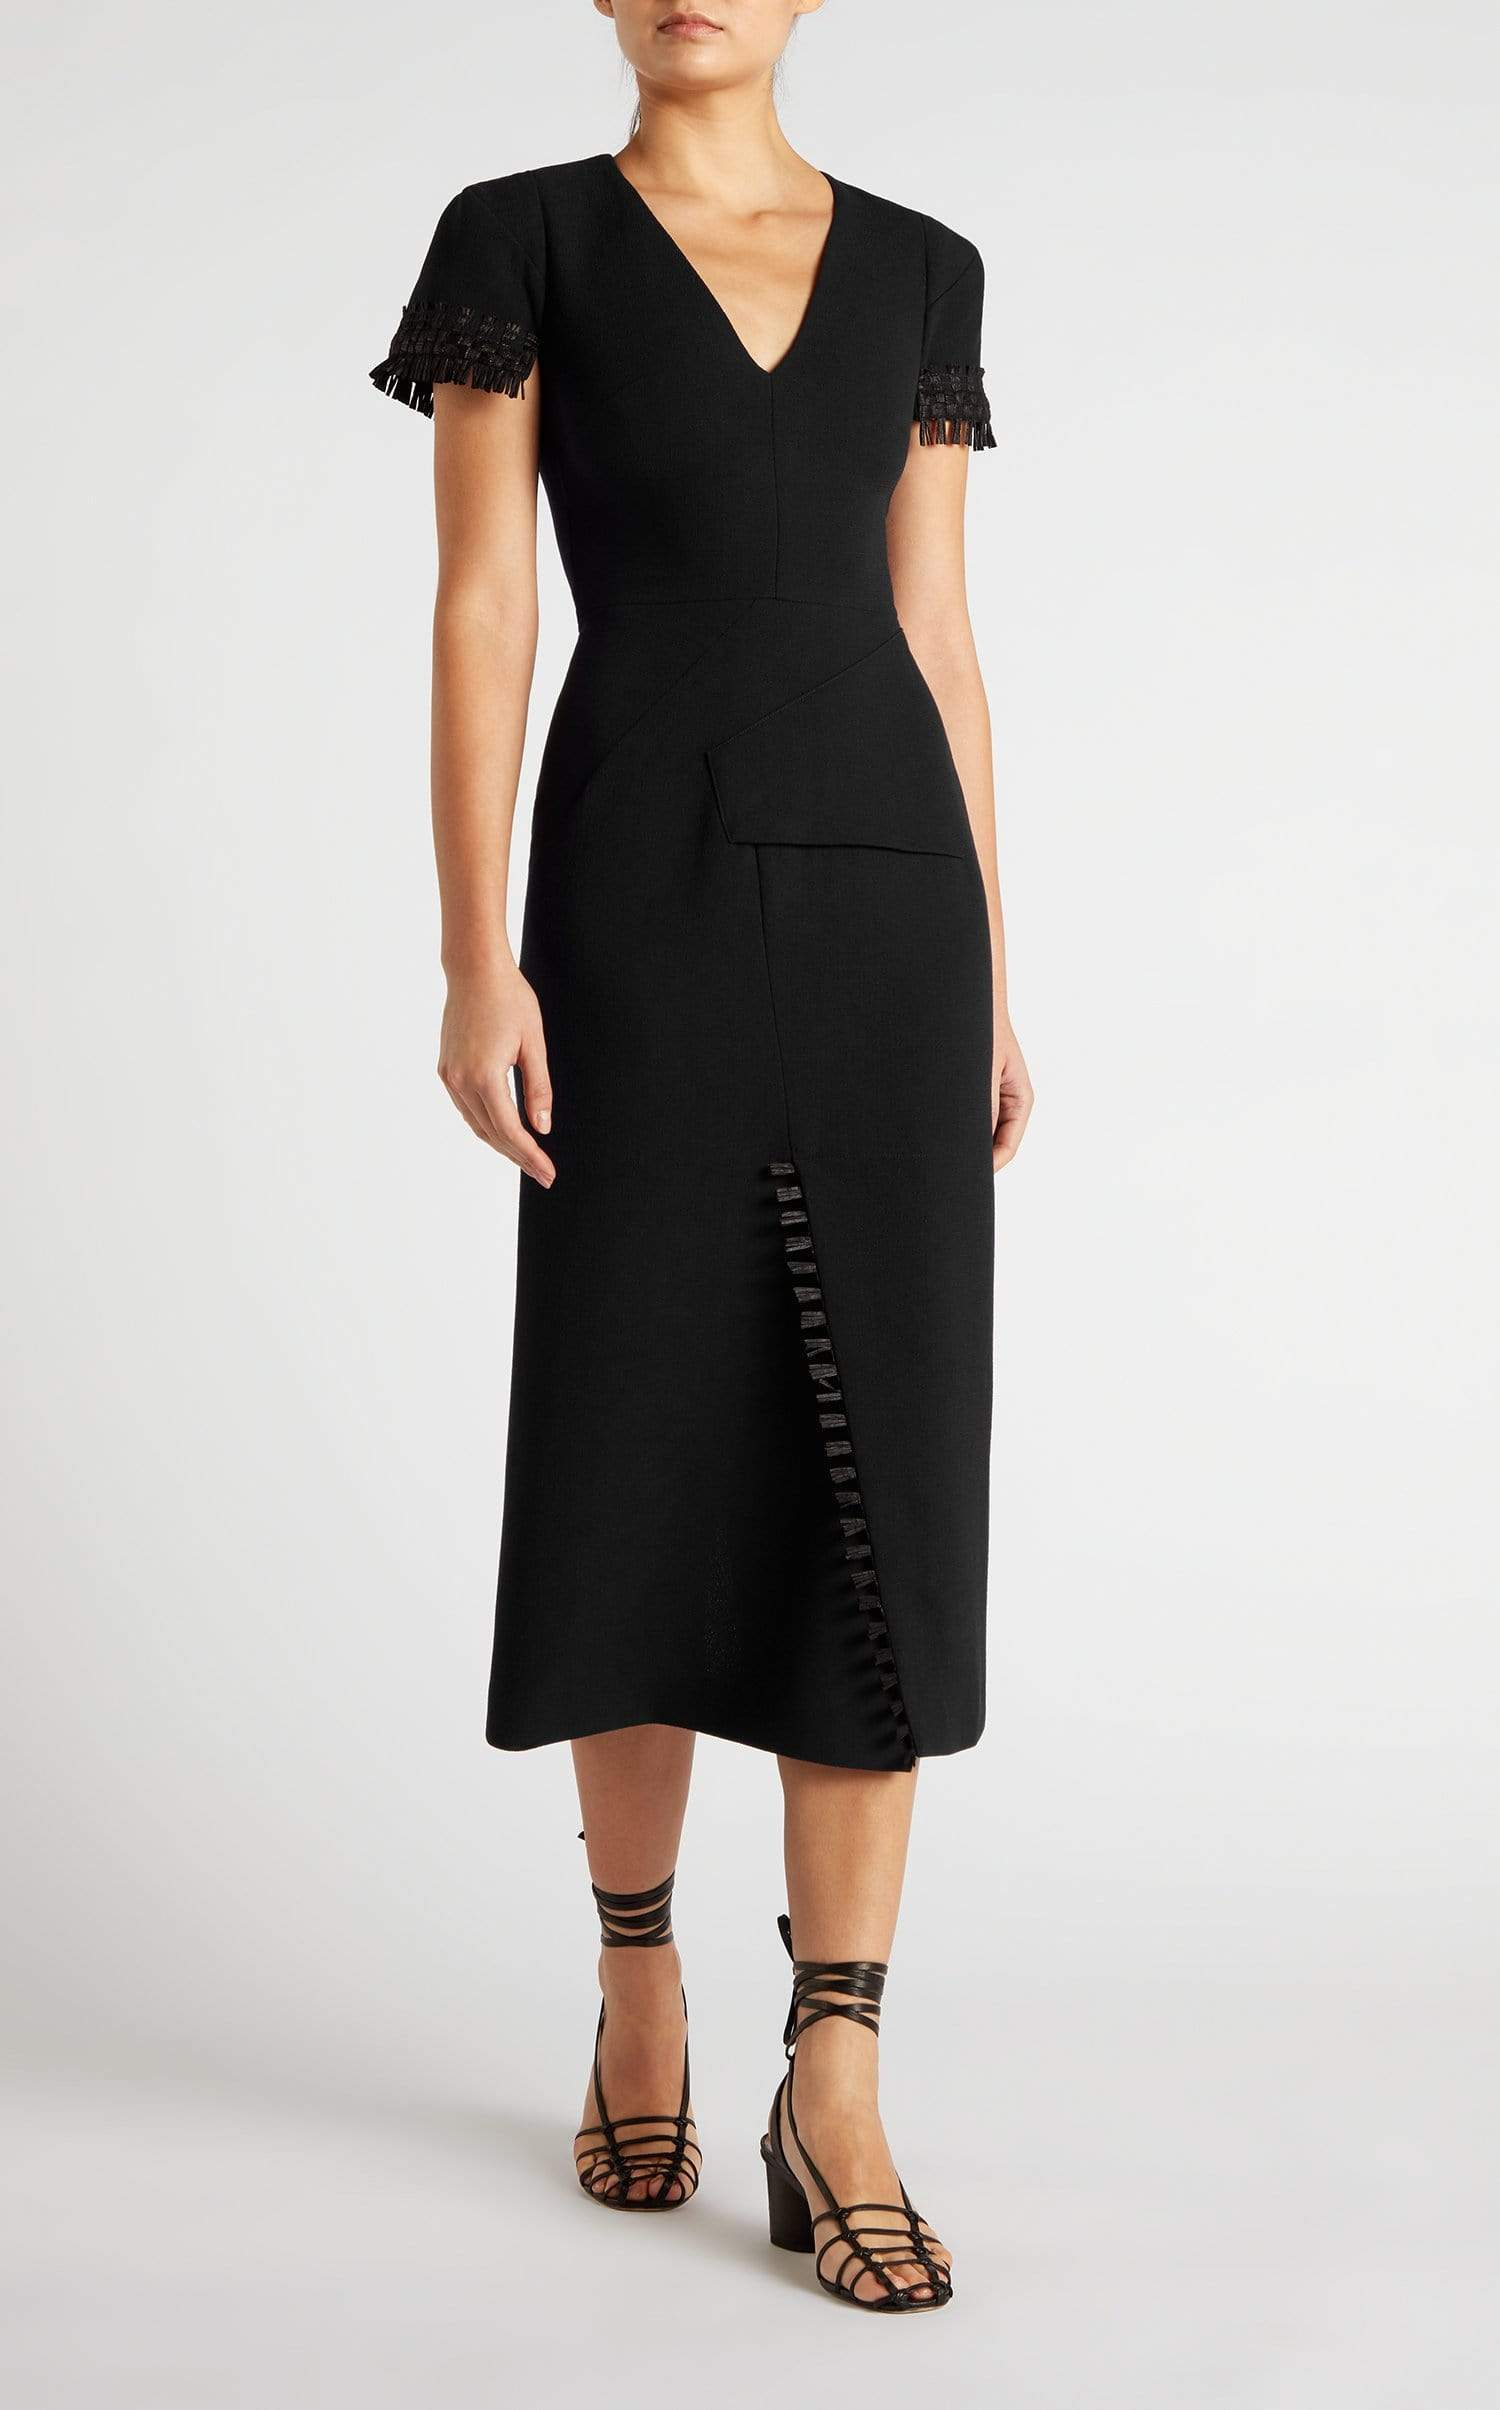 Fortana Dress In Black from Roland Mouret